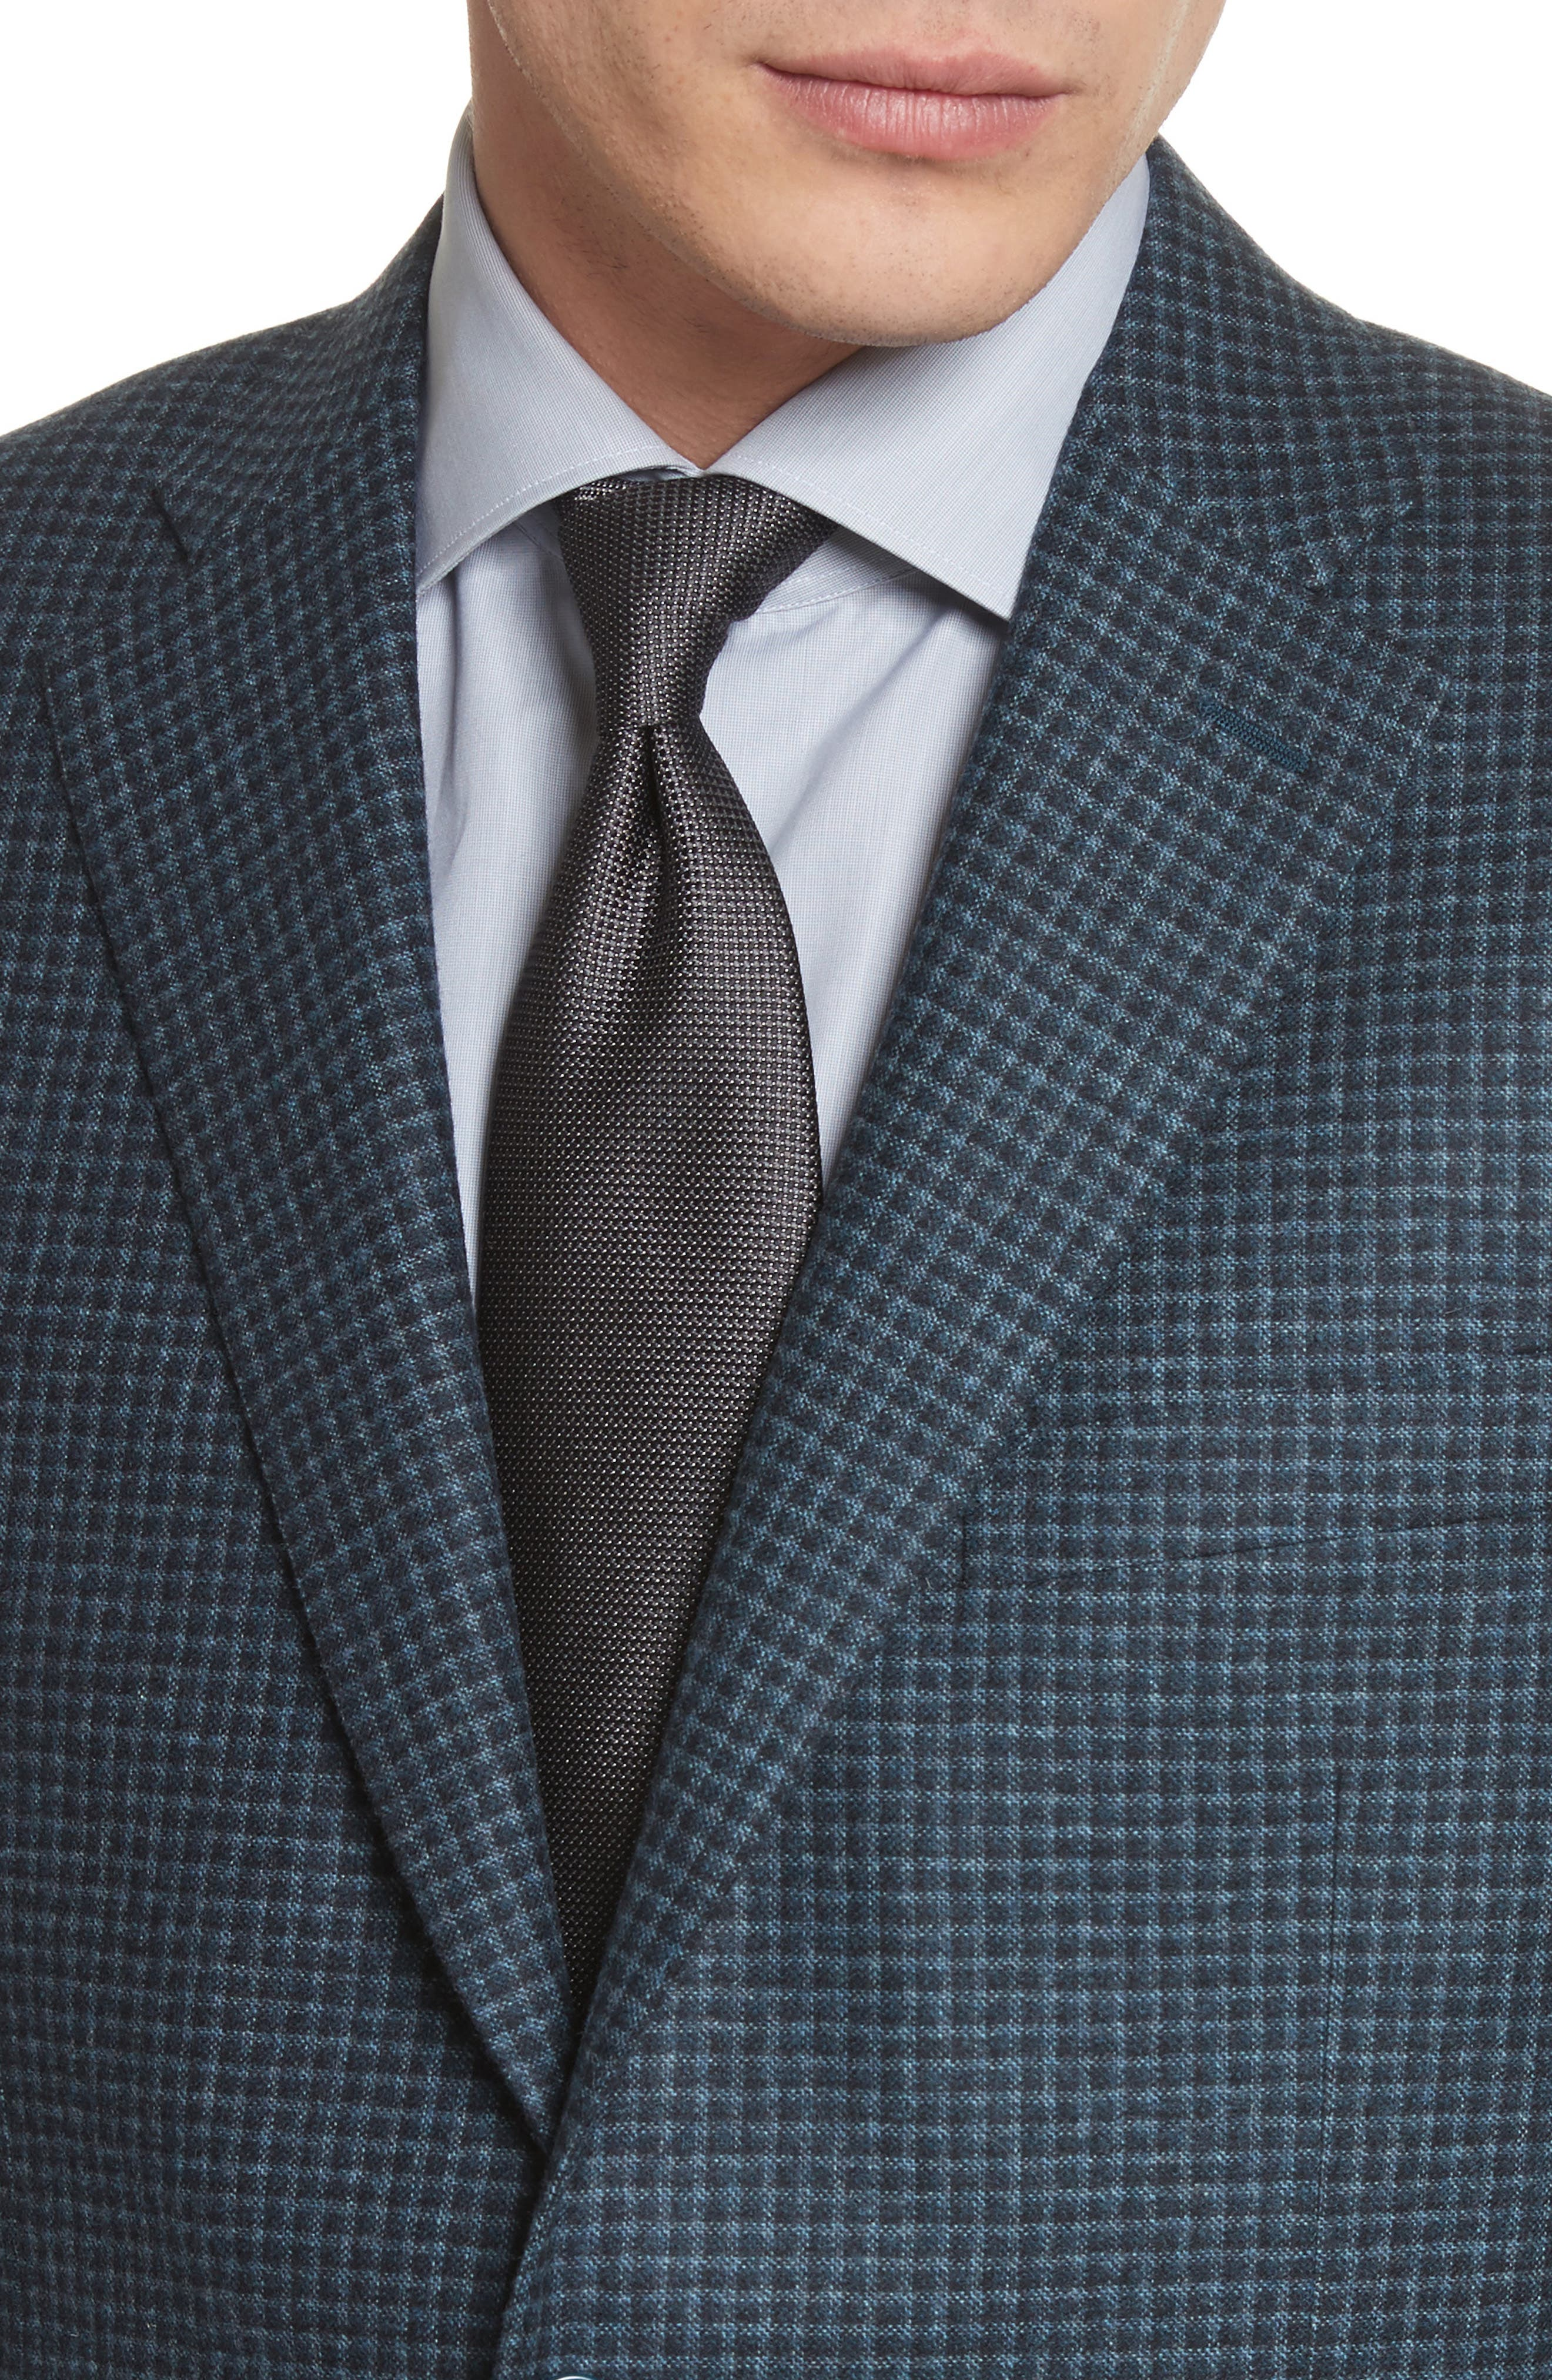 Classic Fit Check Wool & Cashmere Sport Coat,                             Alternate thumbnail 4, color,                             Navy